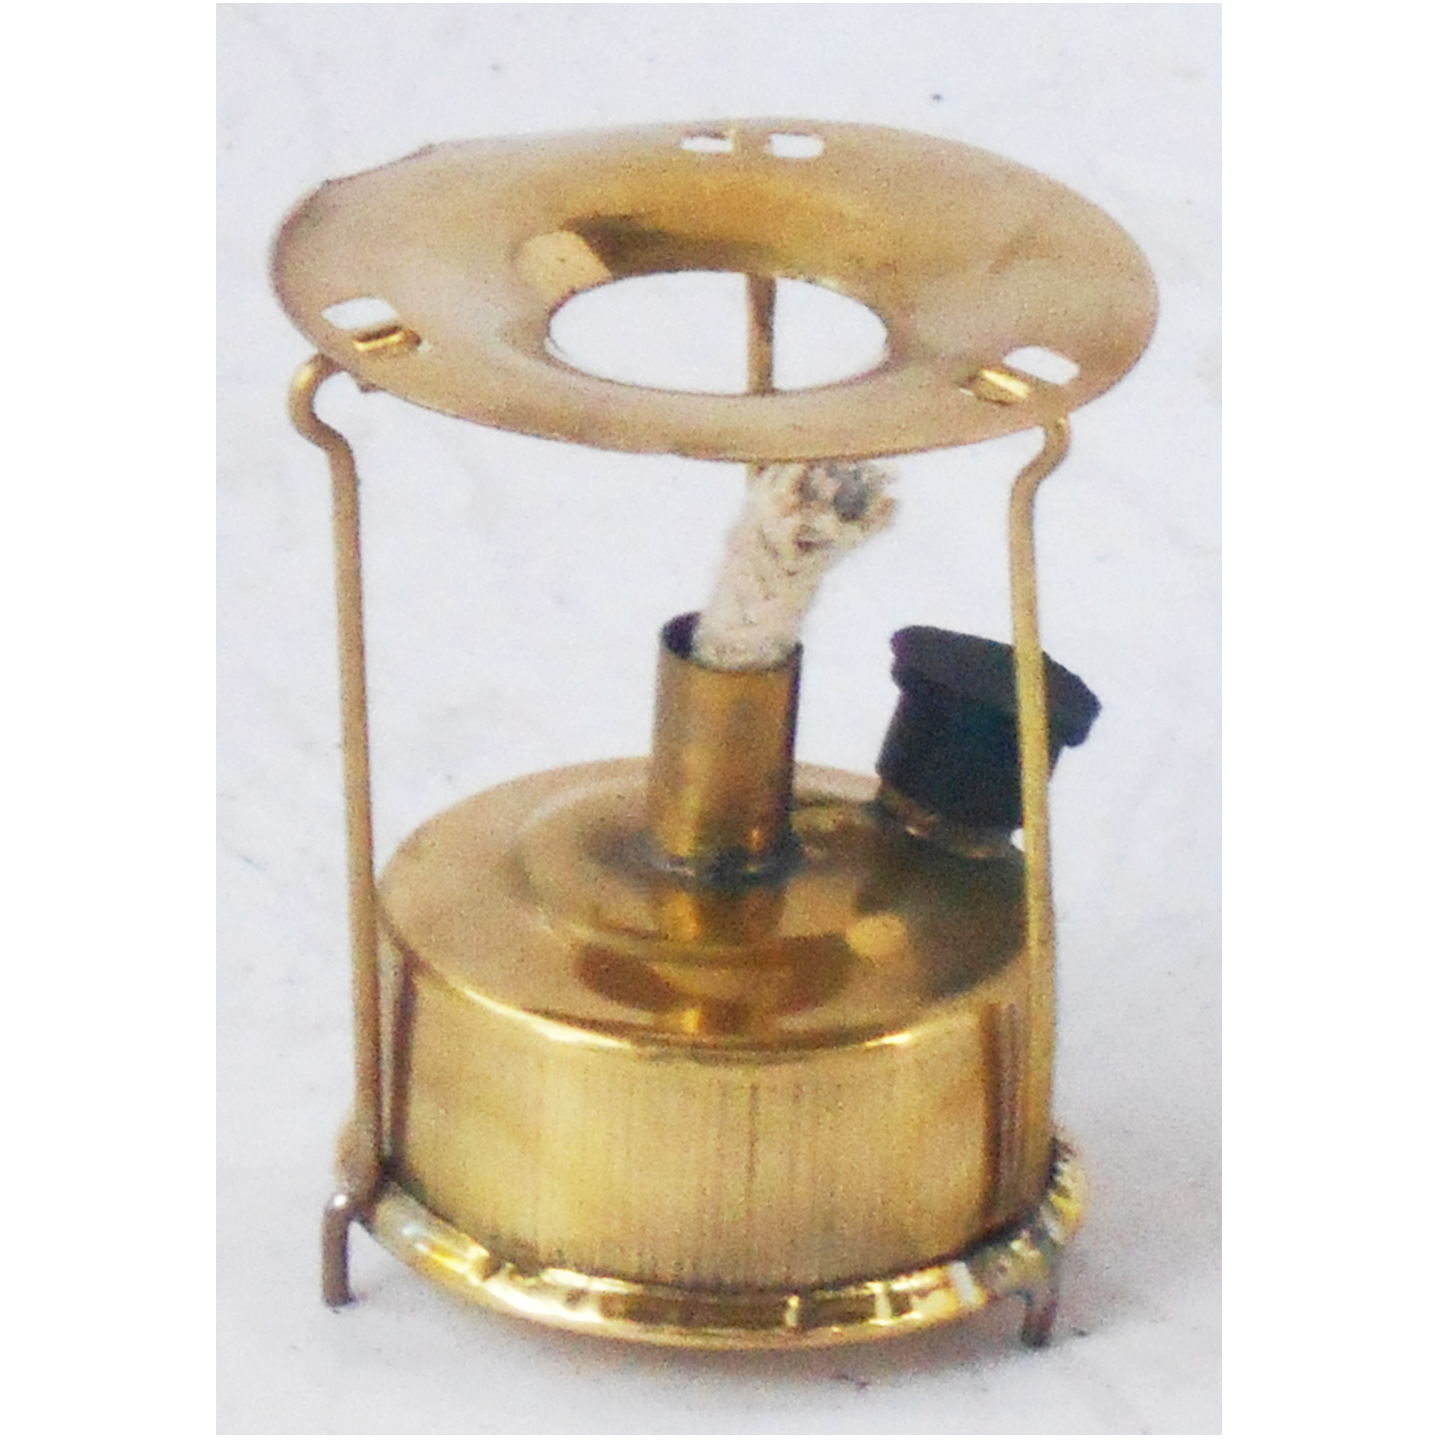 Brass Oil Burner Miniature Toy For Children Playing - 2*2*2.5 Inch (Z354 C)